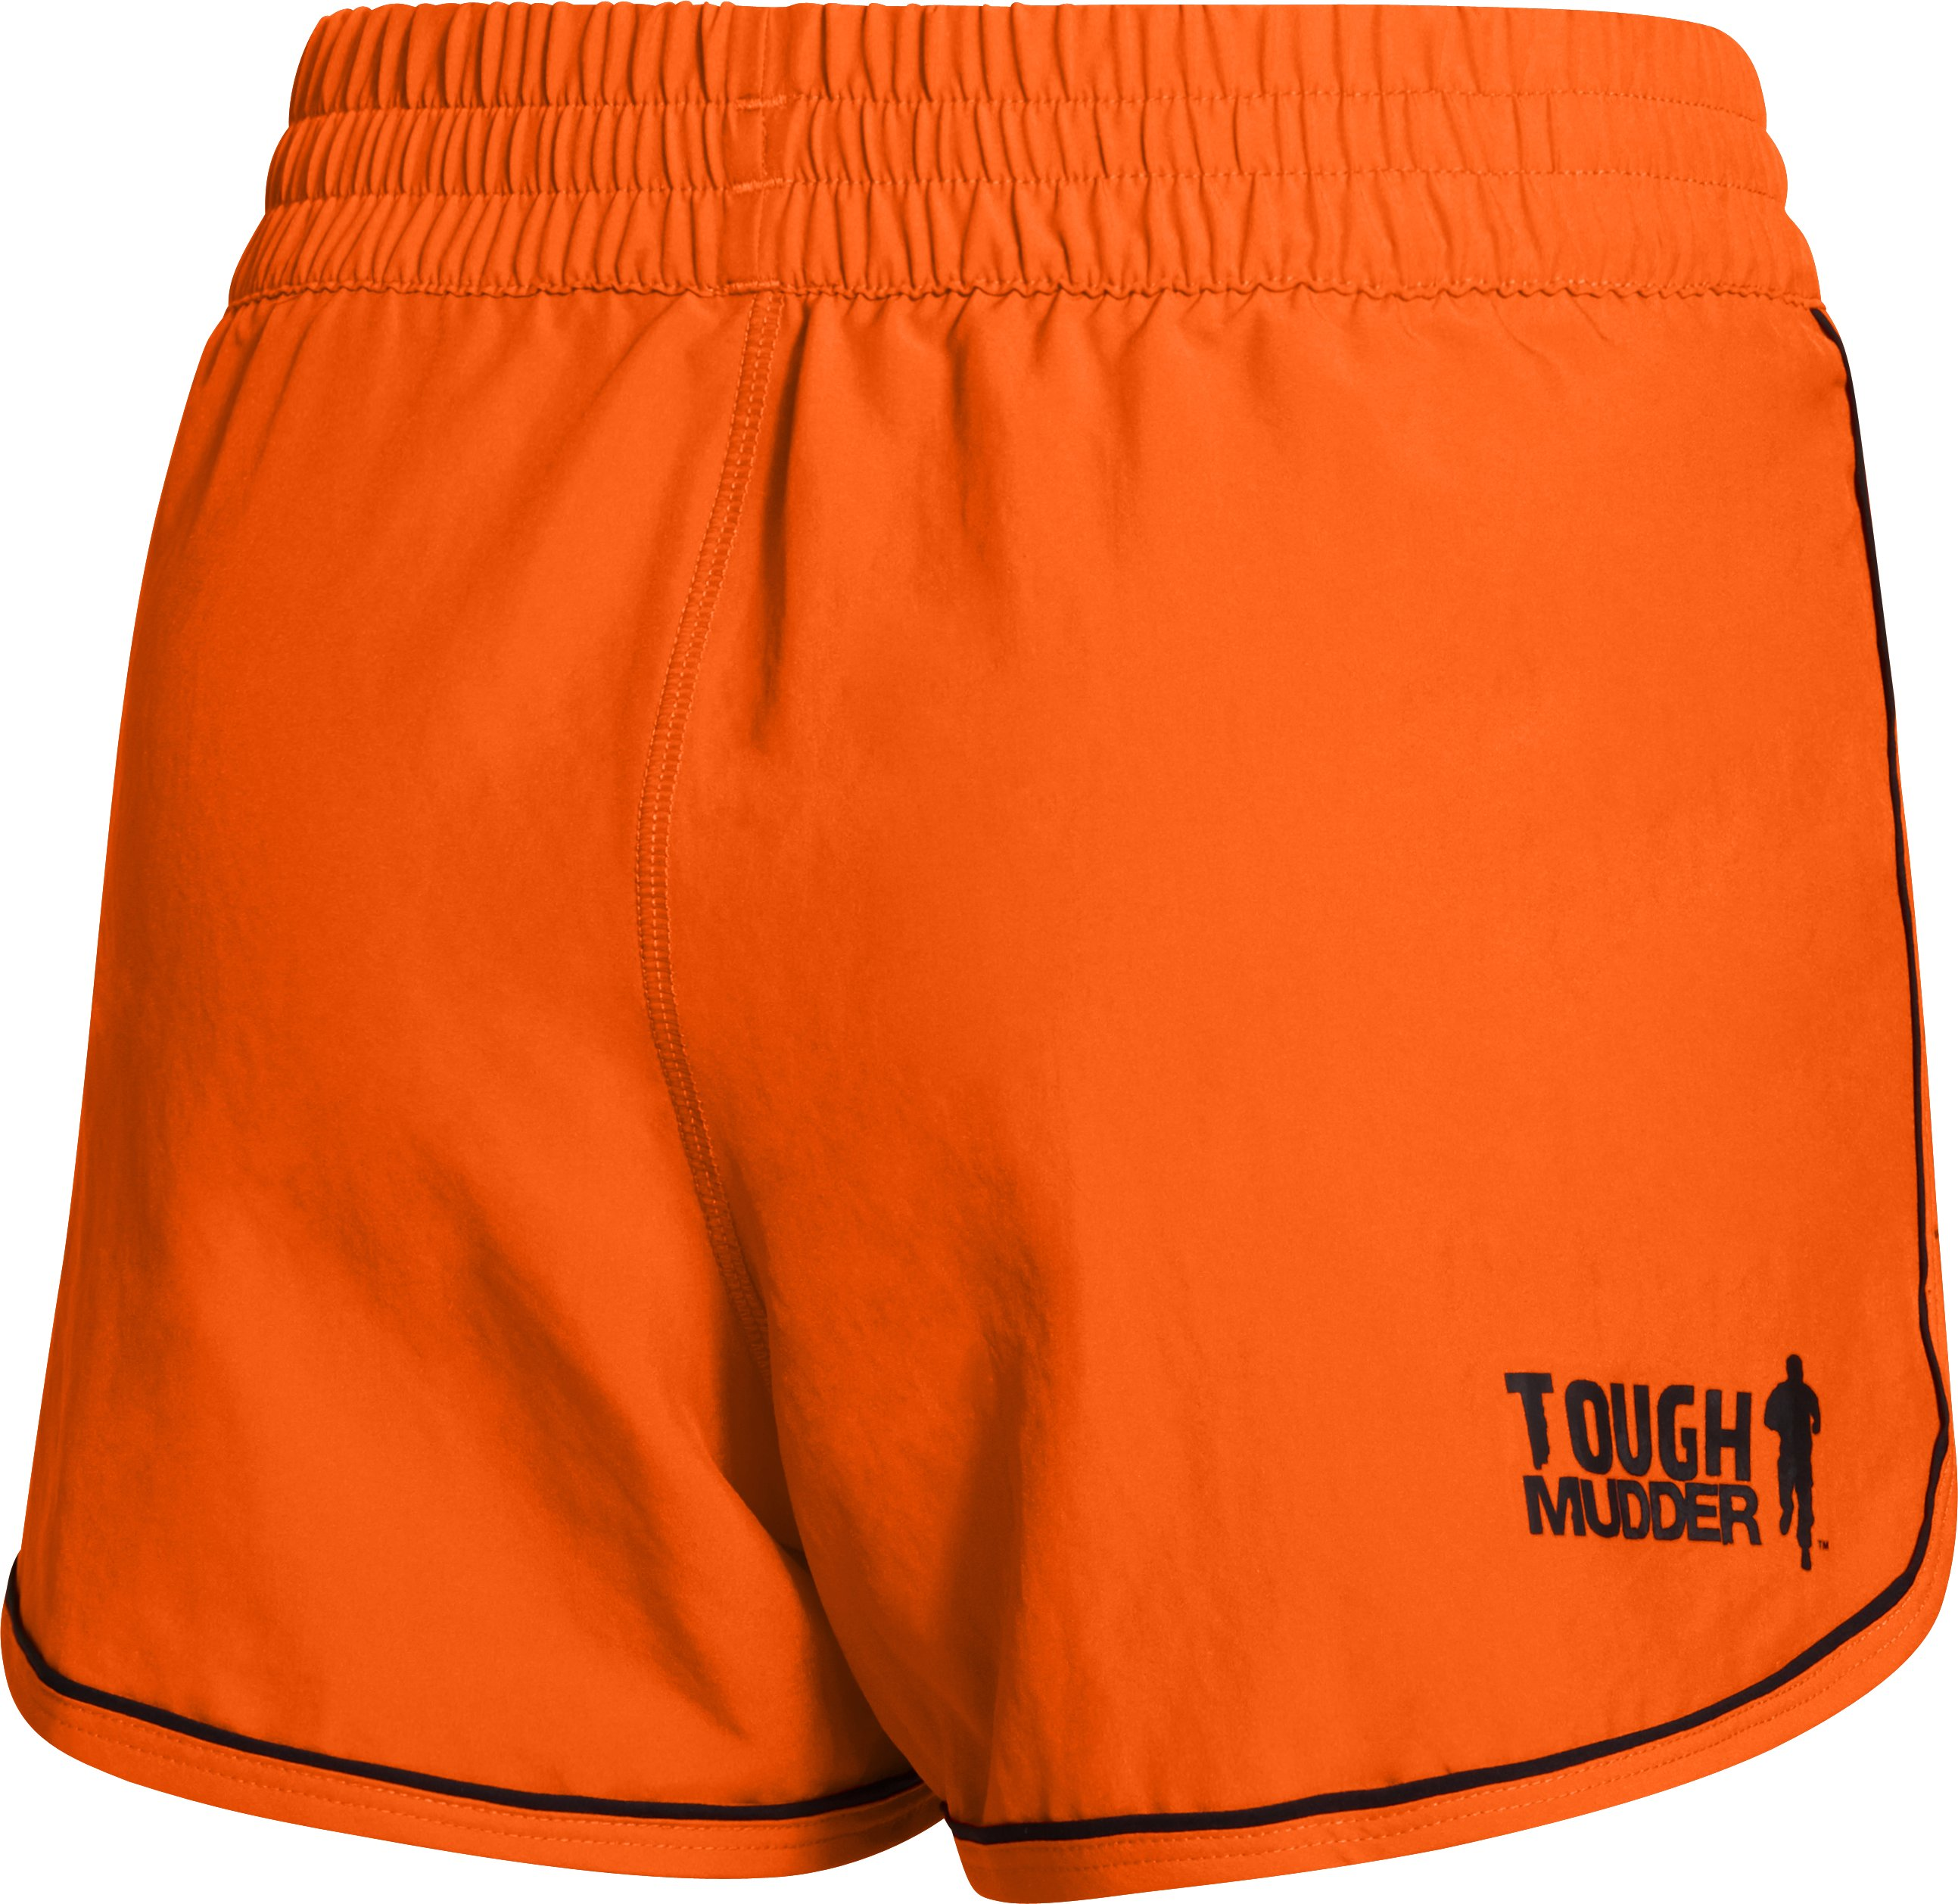 Women's Tough Mudder UA Great Escape II Shorts, Vivid